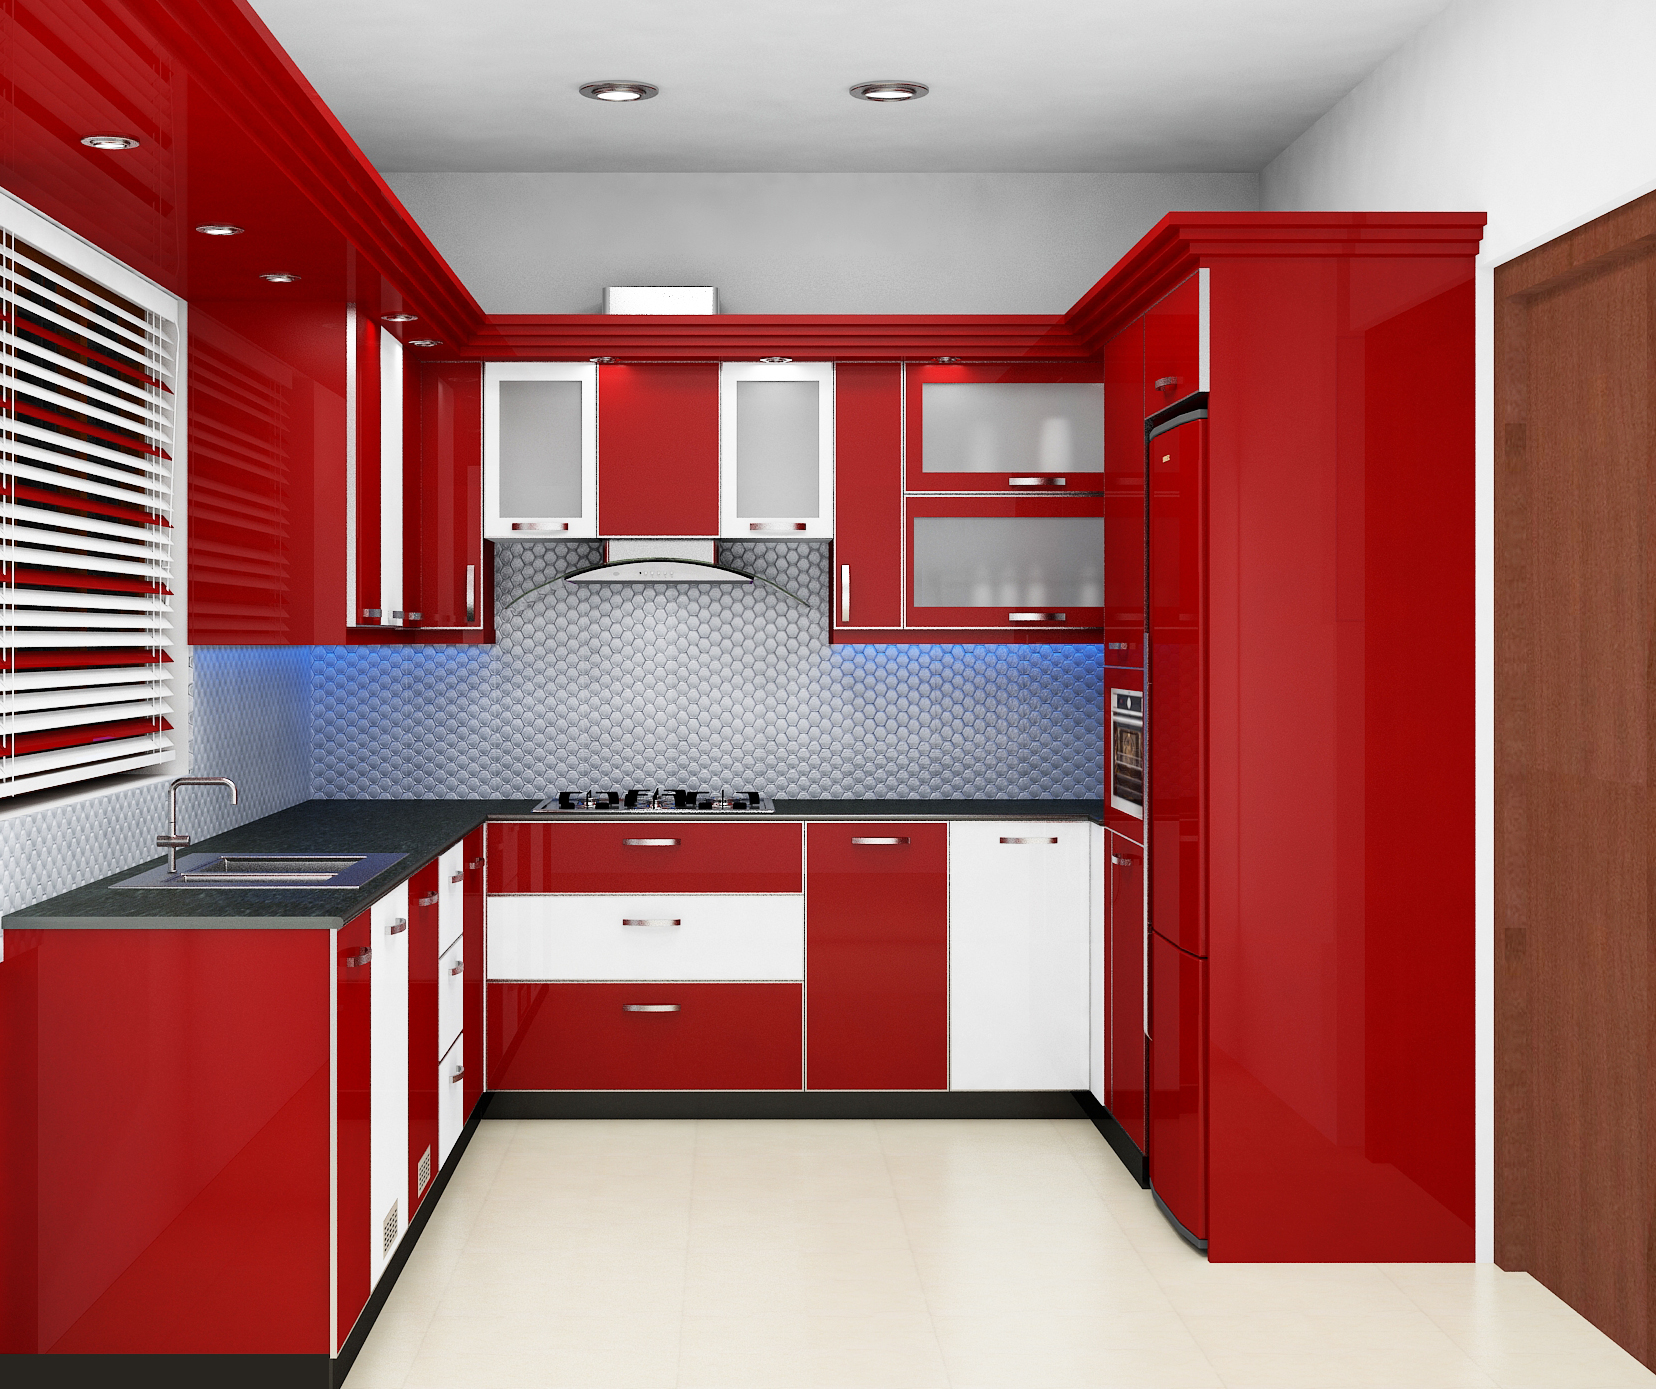 Inside Home Design: Exemplary And Amazing Modular Kitchen Home Interior Design